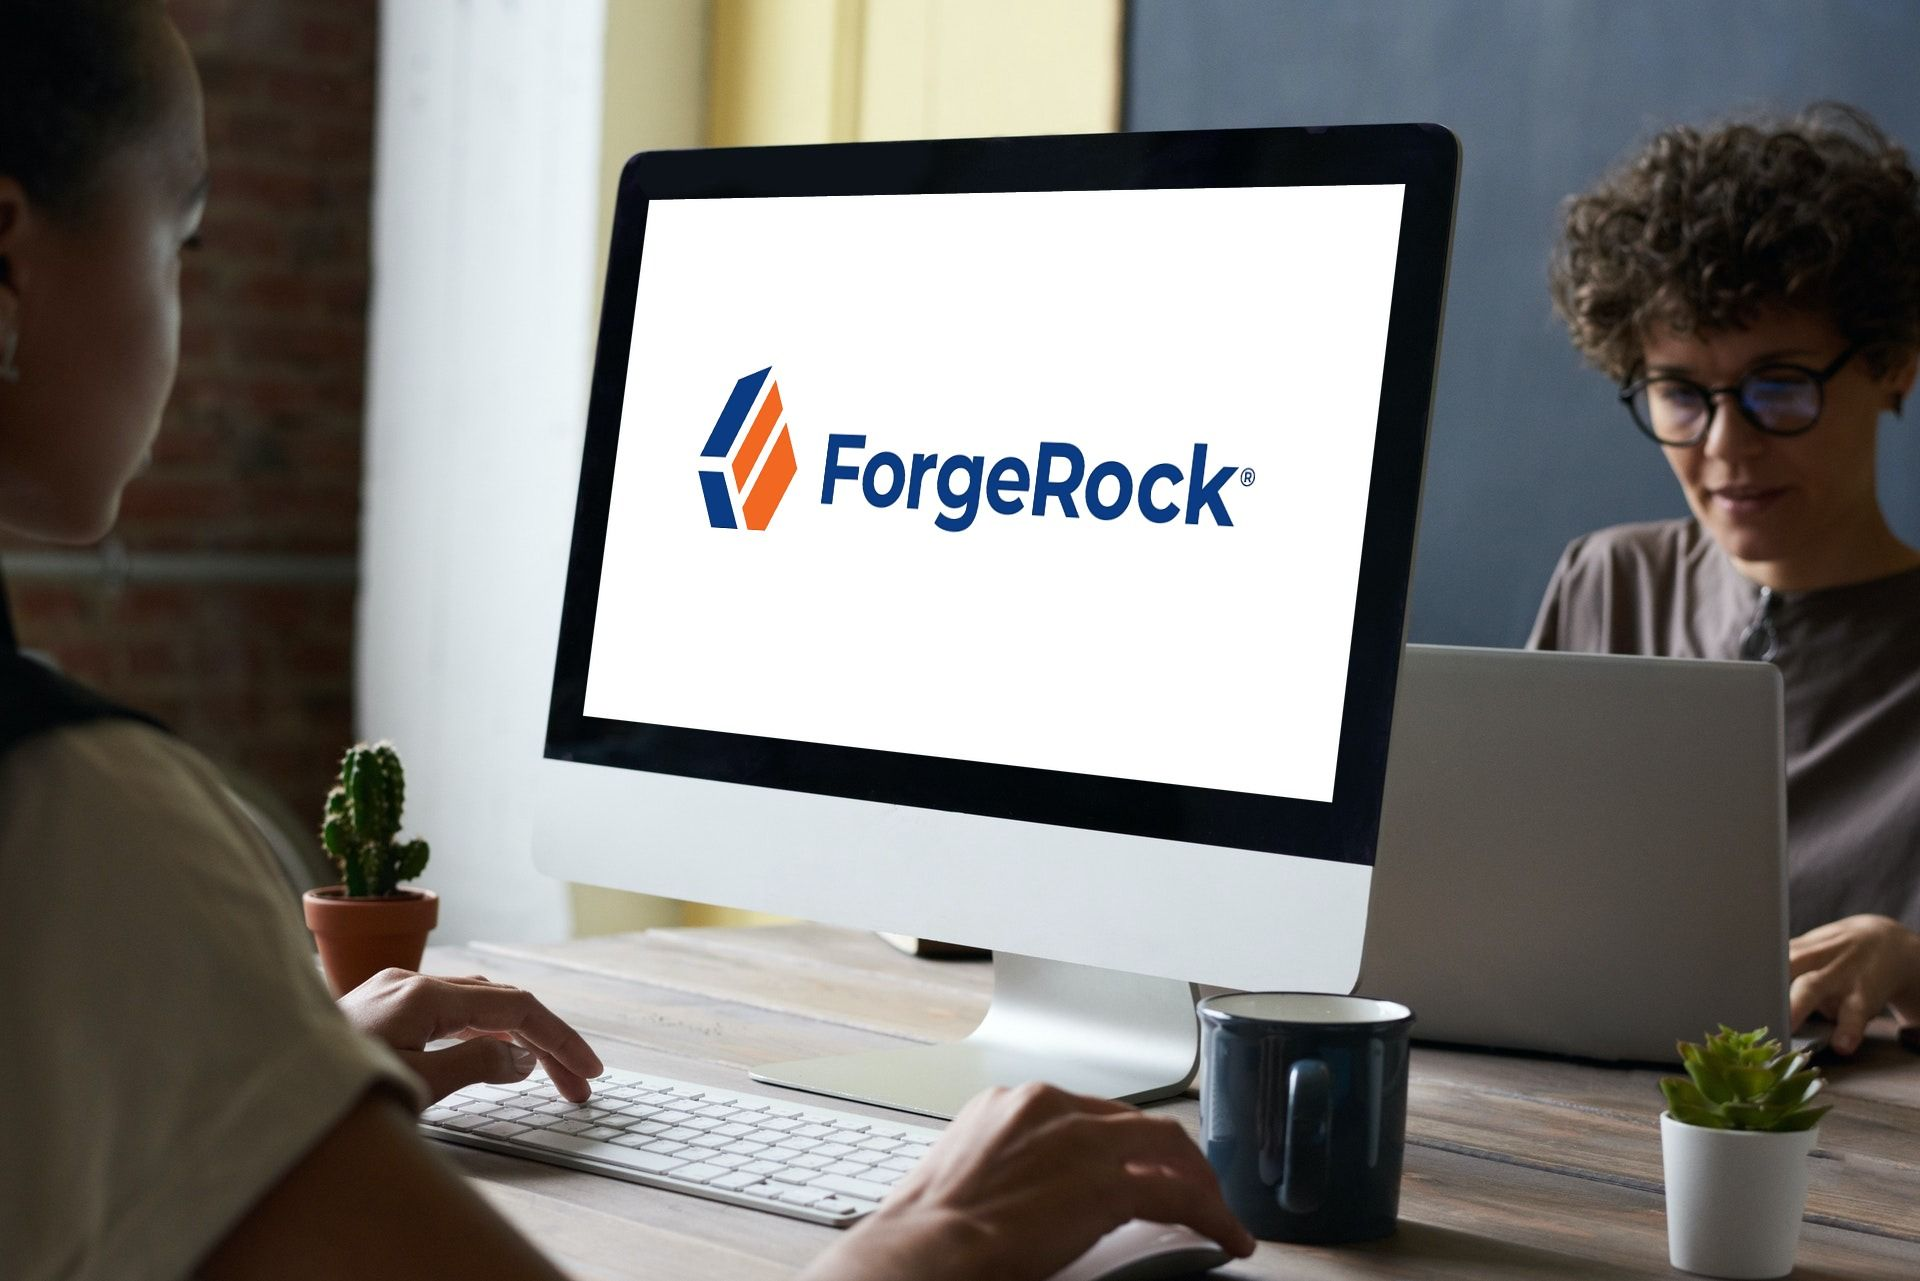 ForgeRock Initial Public Offering